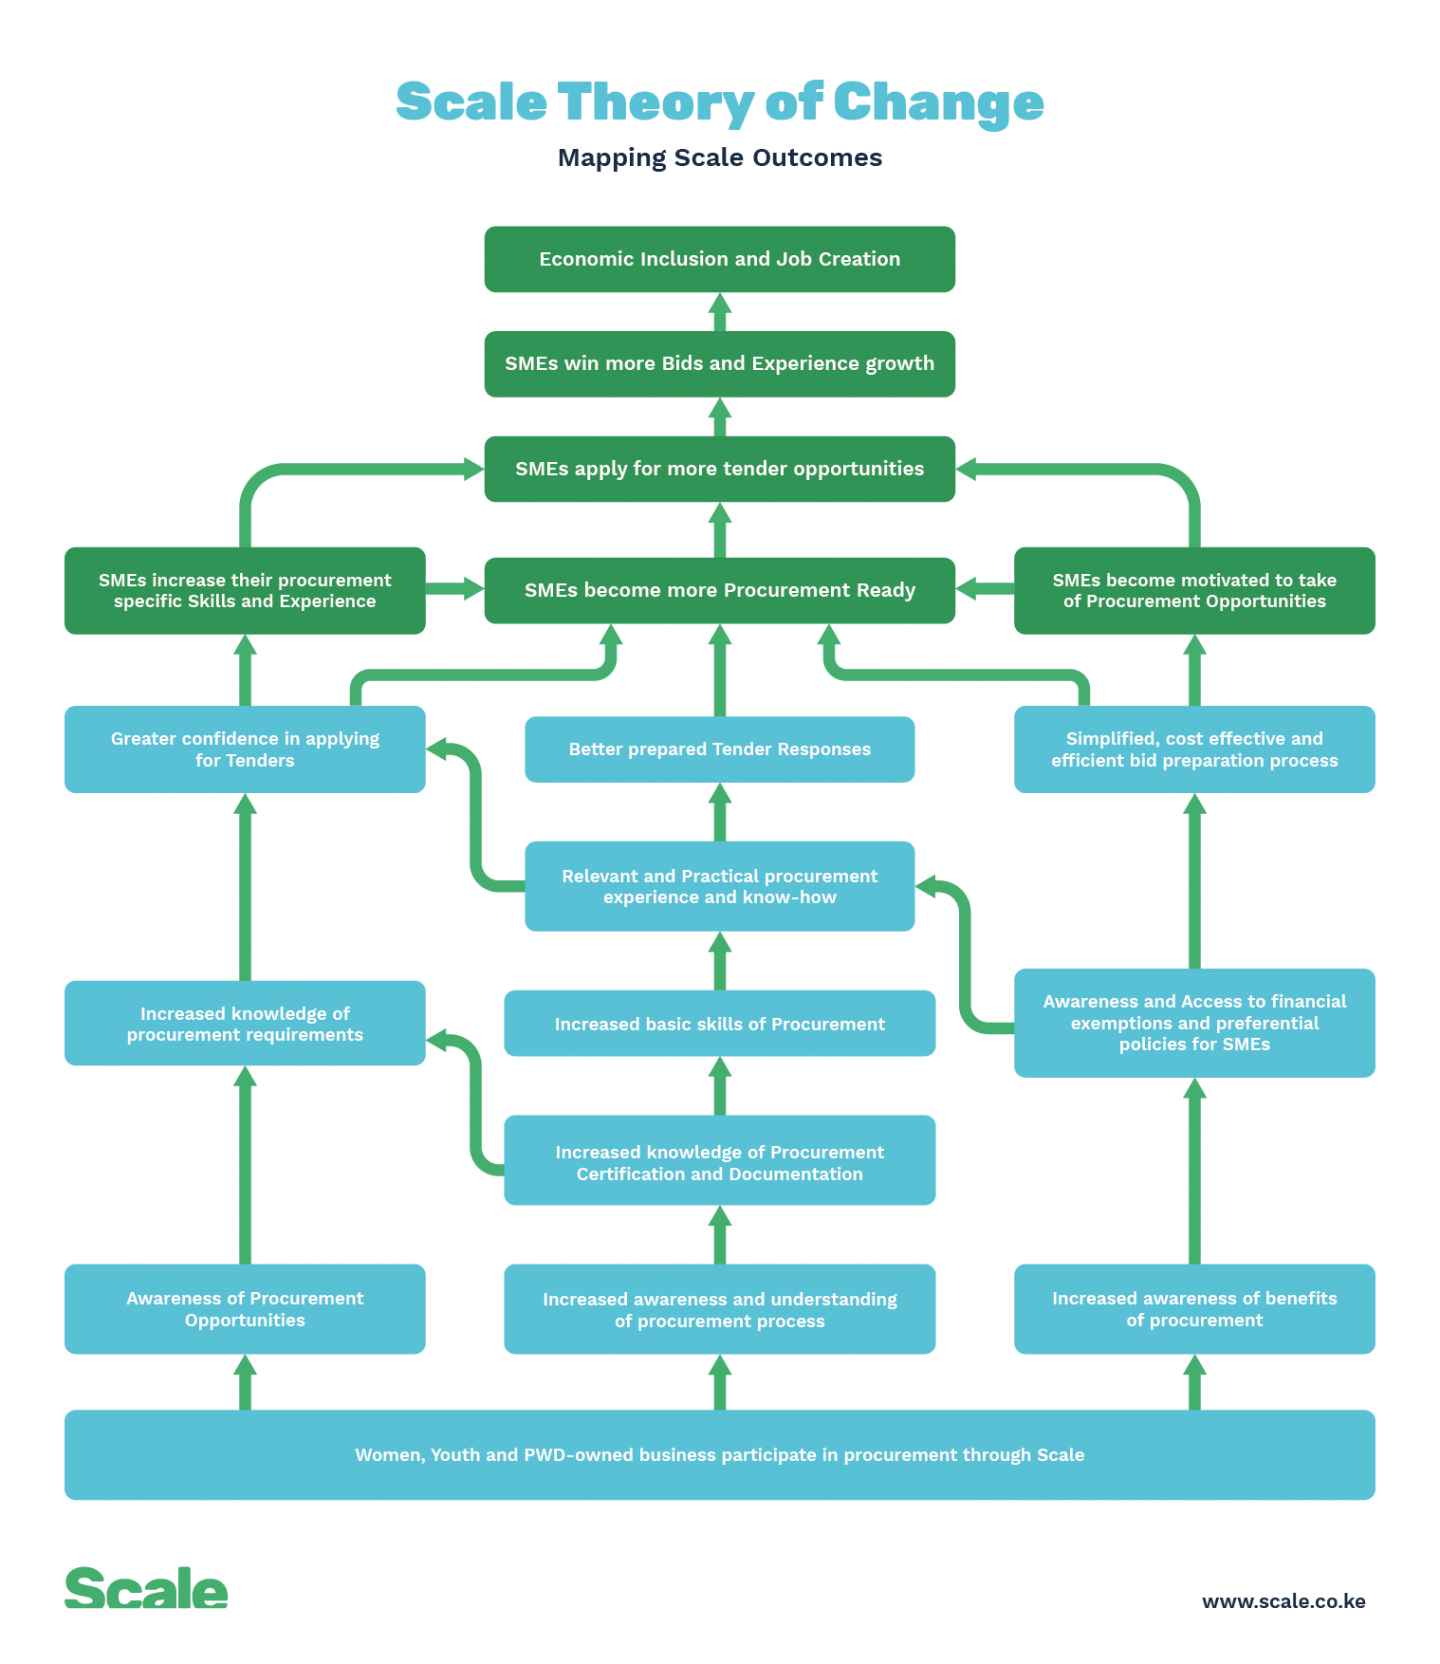 29752_scale-theory-of-change-mapping-outcomes-01_1440x810.png